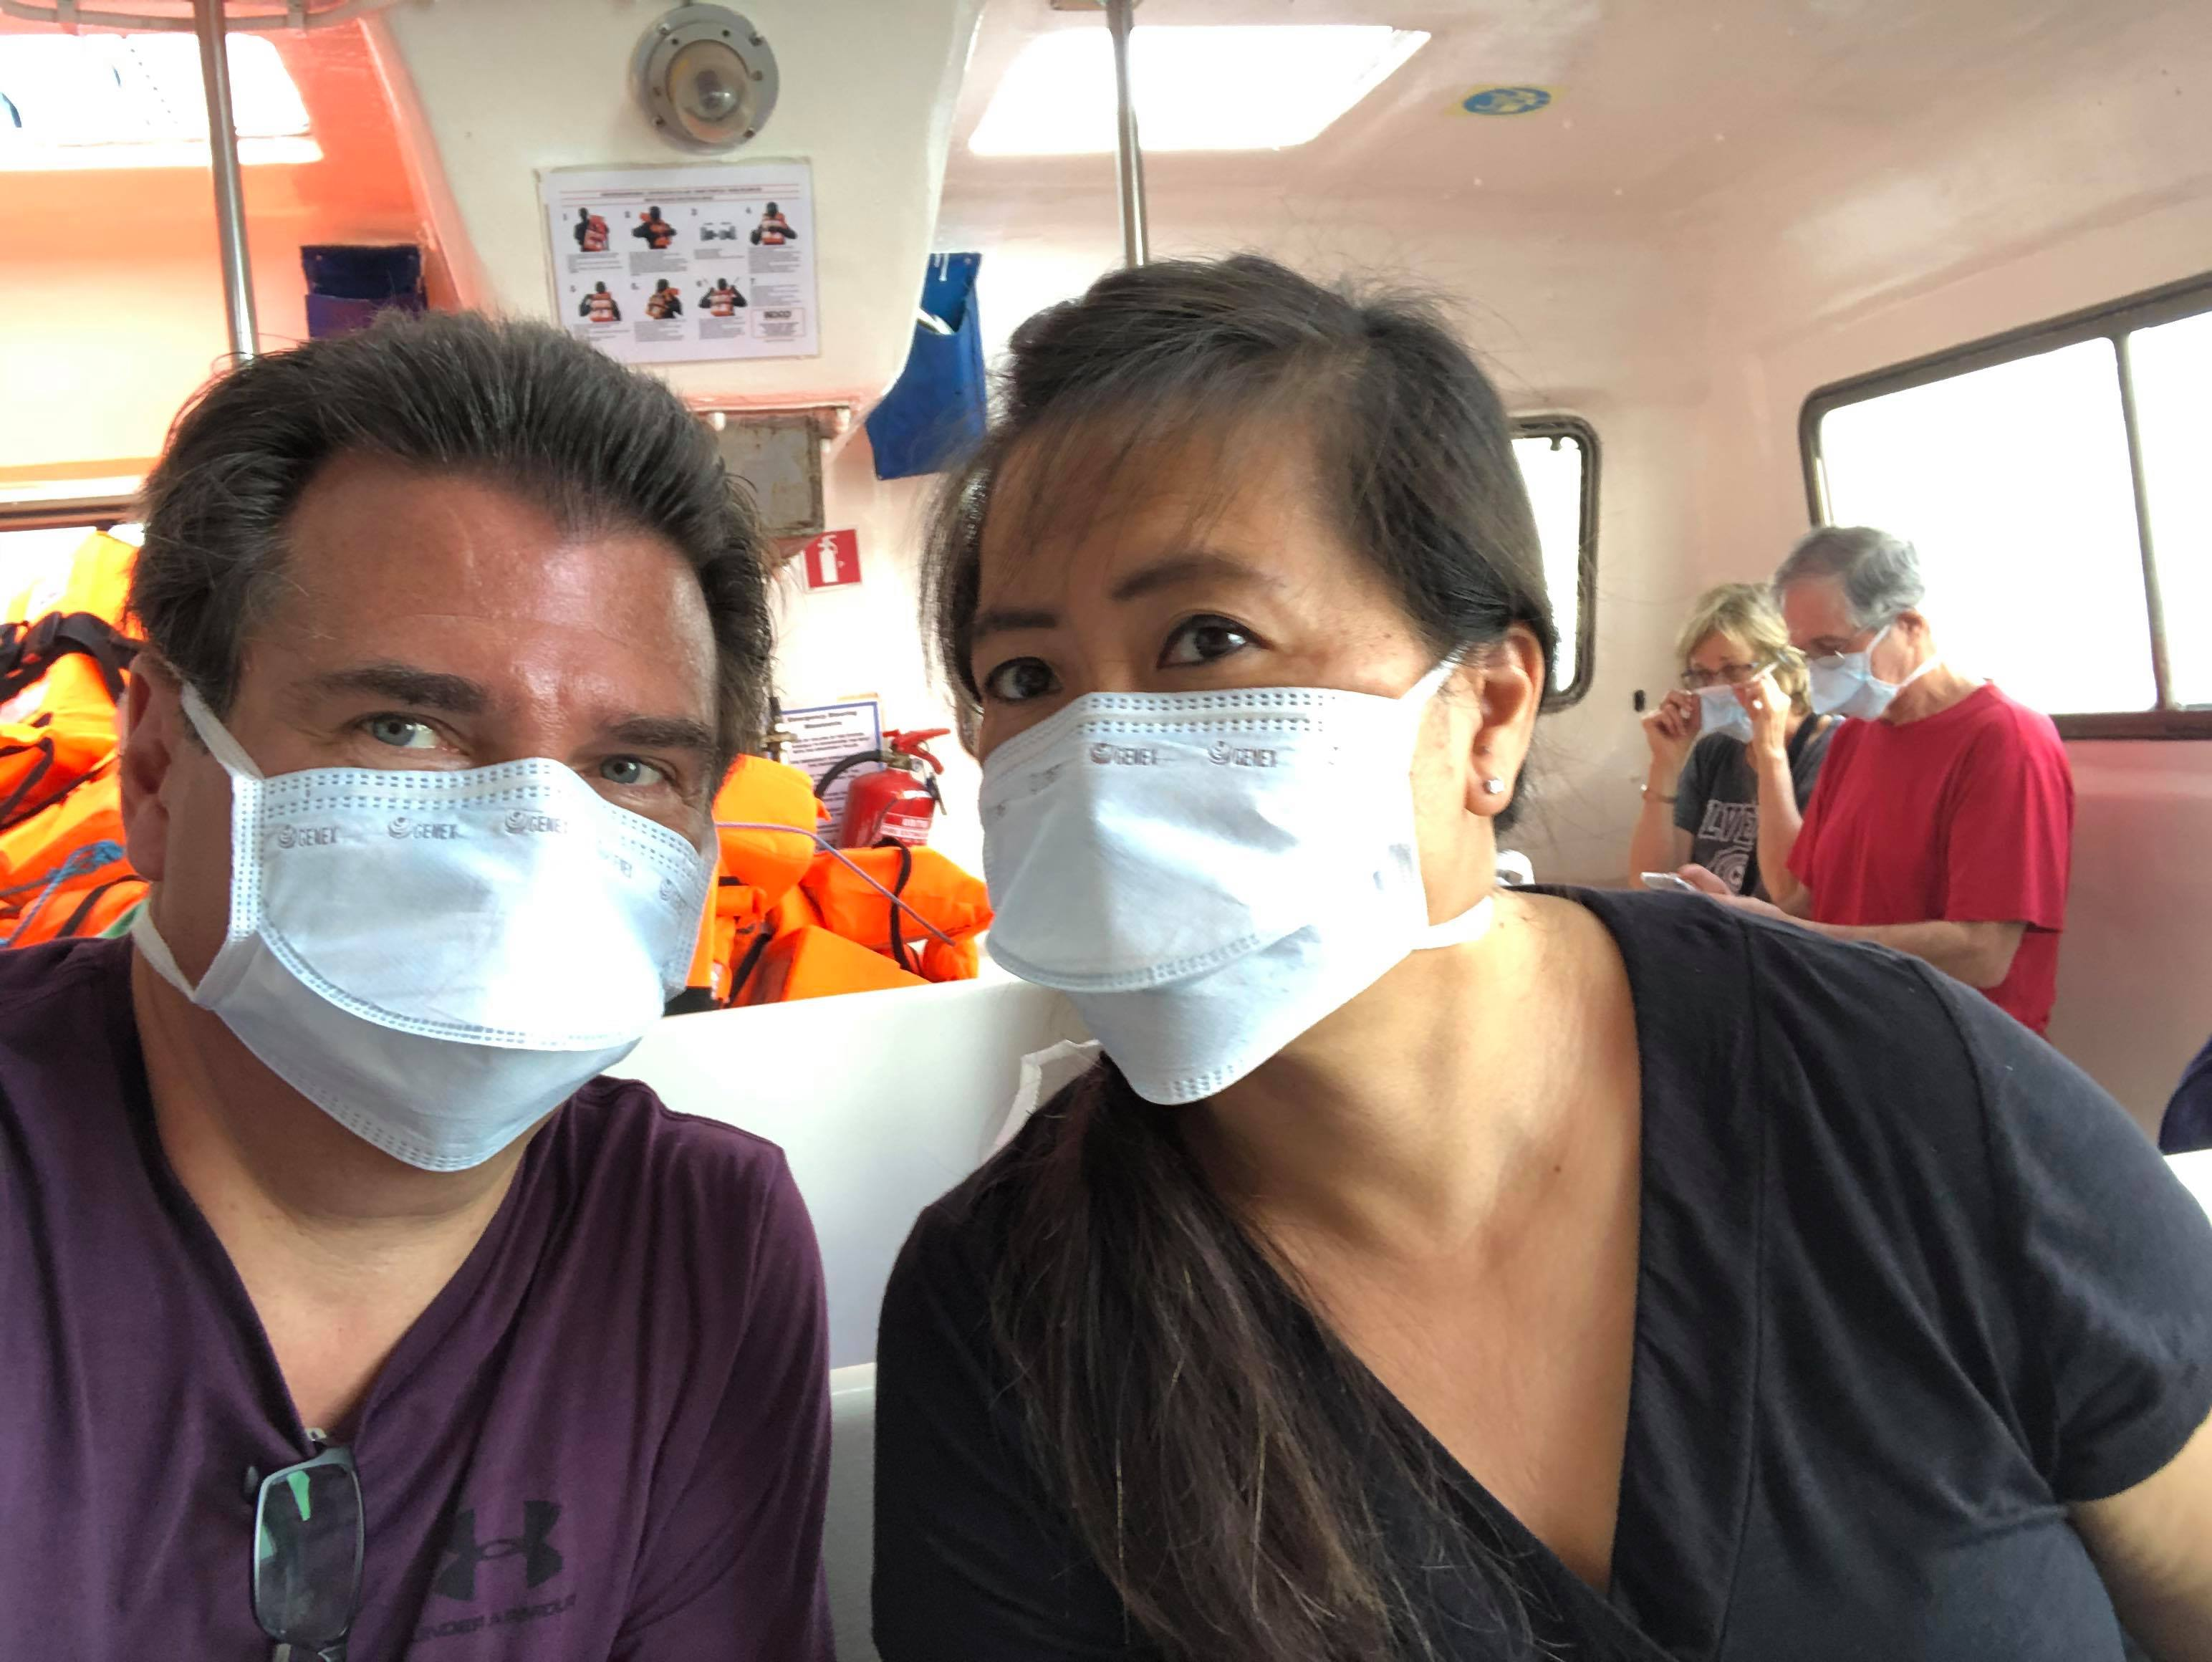 Rick and Wendy de Pinho, passengers aboard the virus-stricken Zaandam cruise ship, pictured during their transfer to the Rotterdam cruise ship on Sunday.